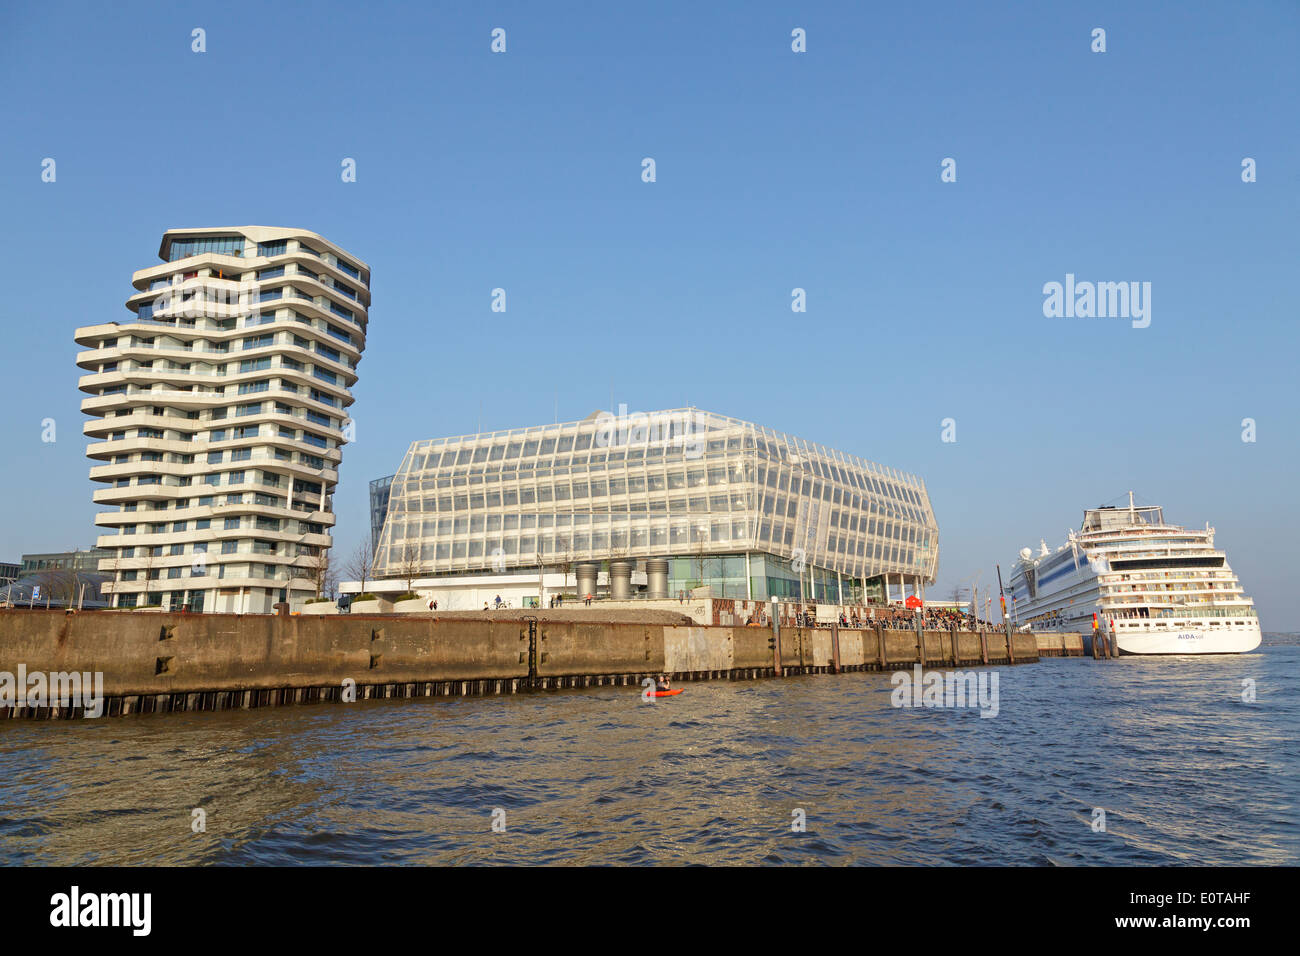 Marco Polo Tower, Unilever House, and AIDAsol cruiser, Harbour City, Hamburg, Germany - Stock Image